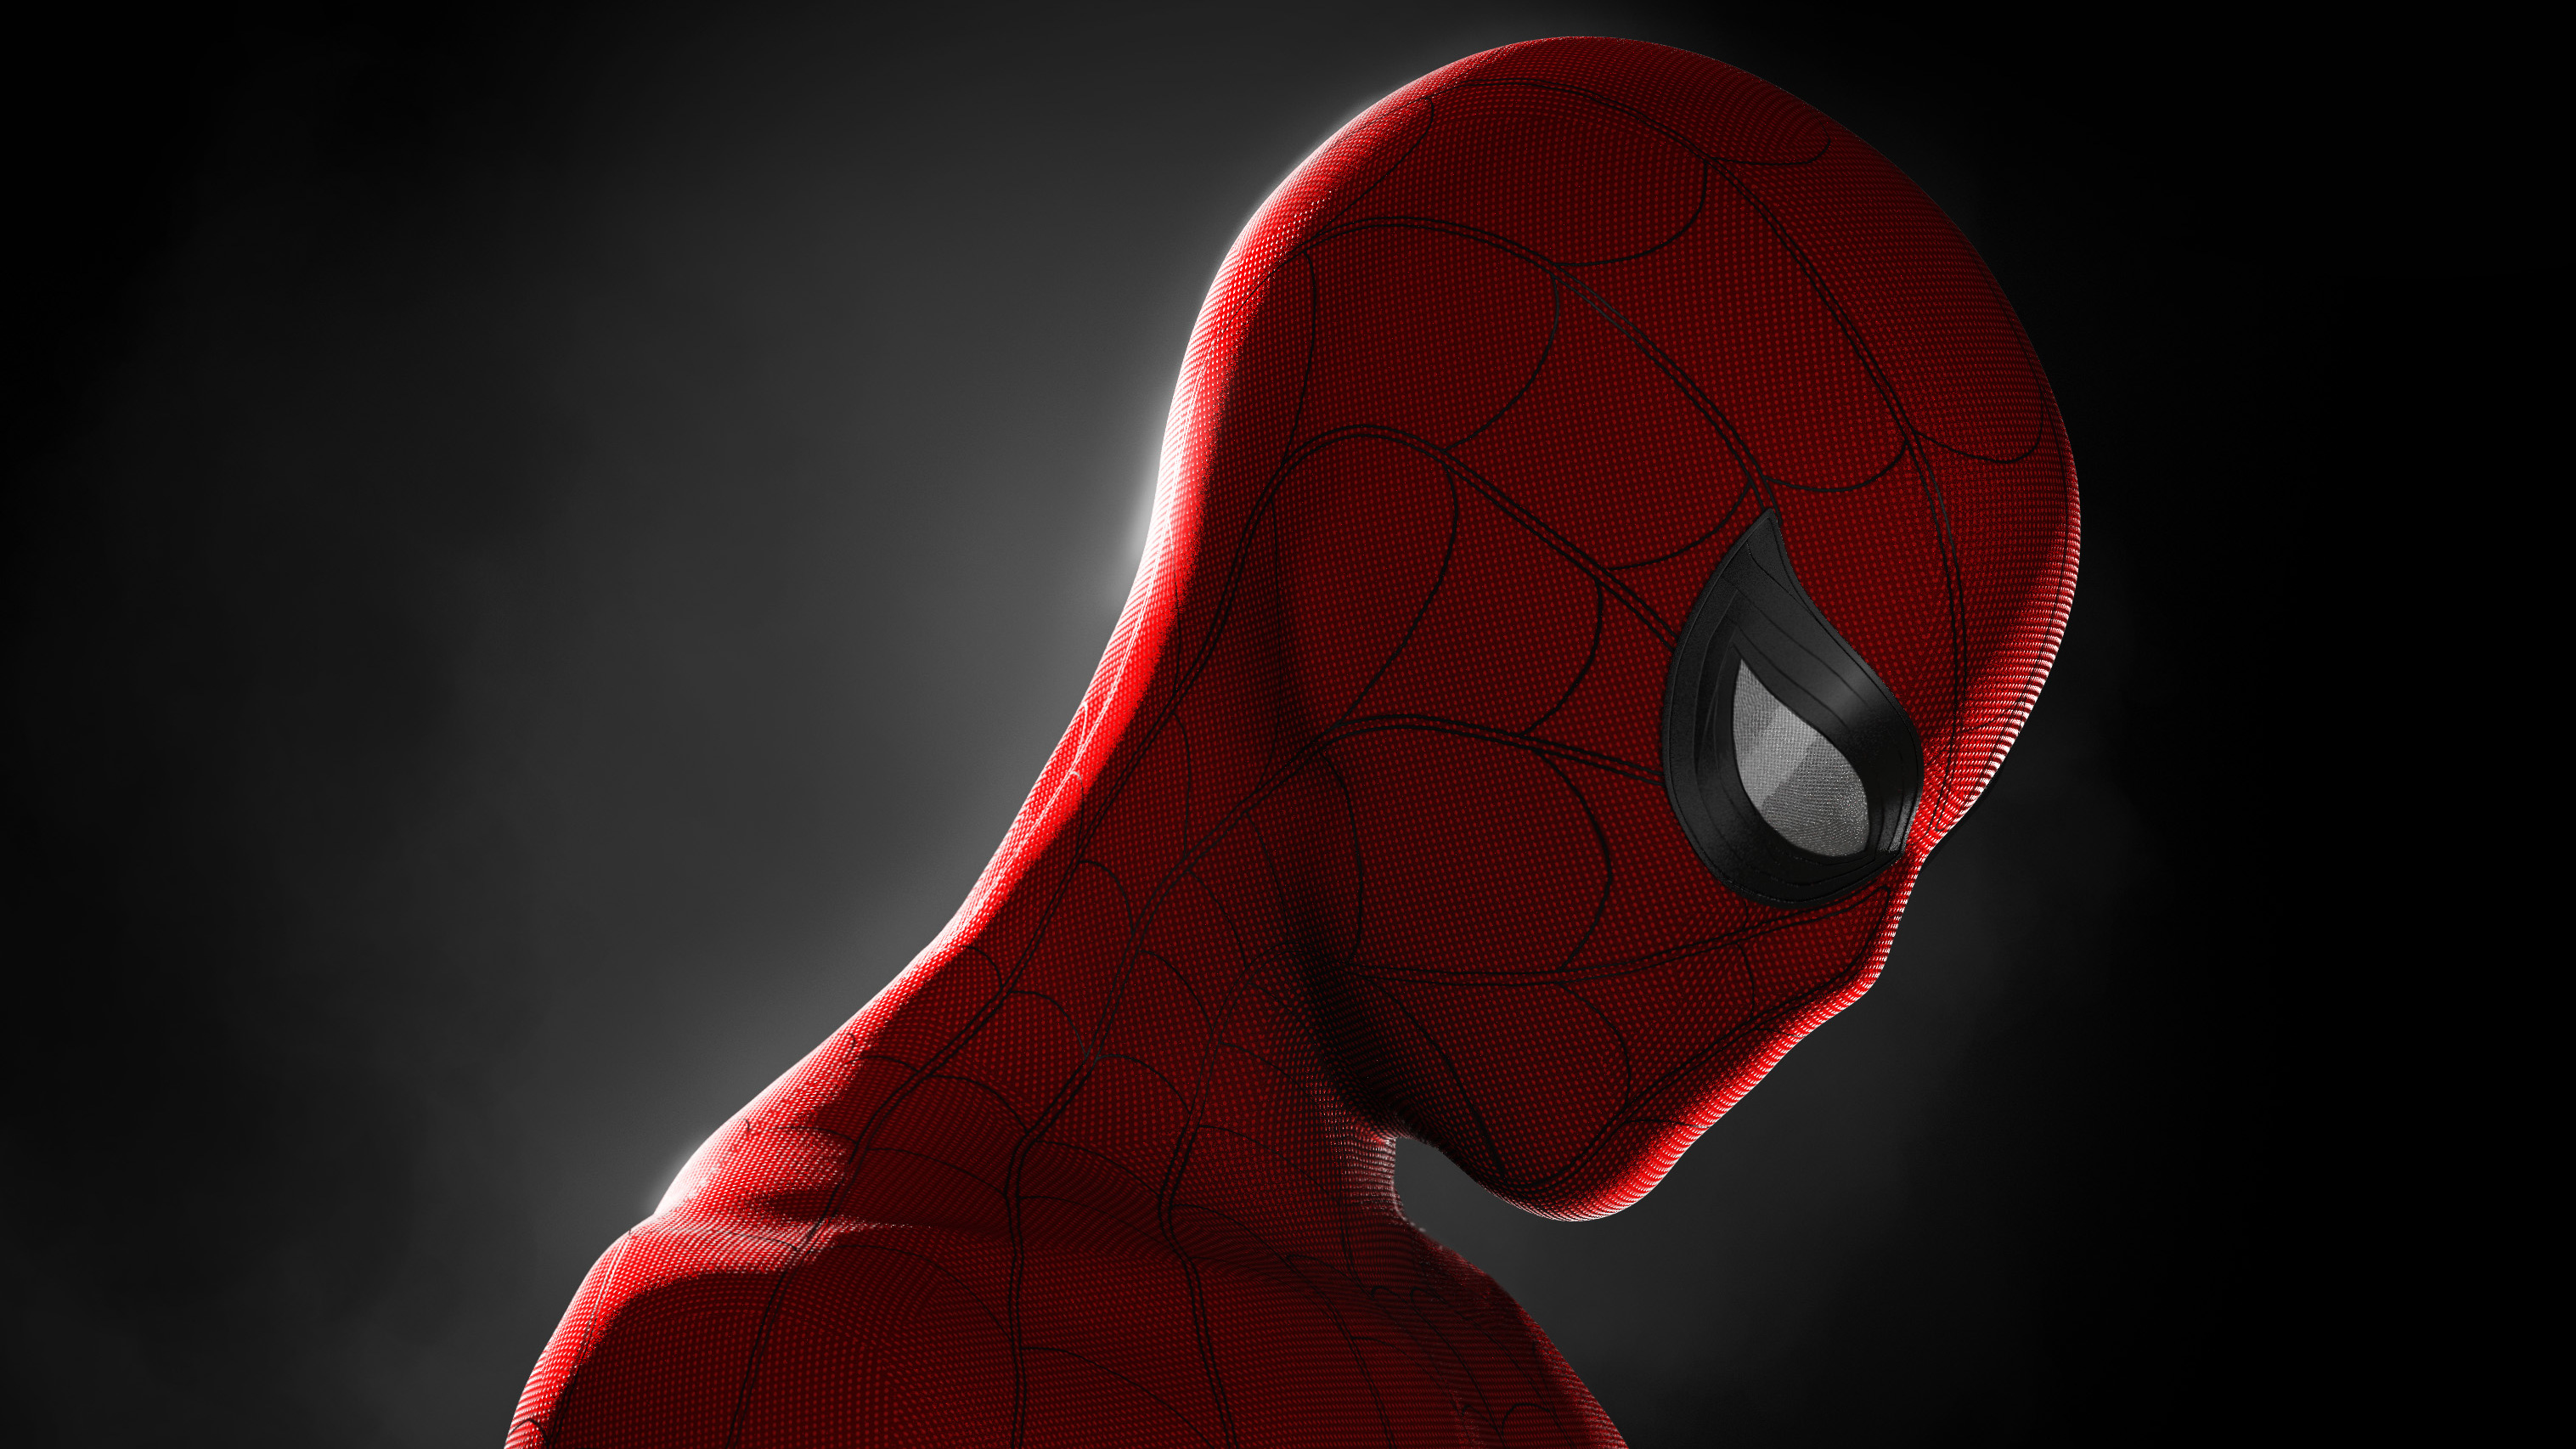 Spider-man appears to be sad.jpg